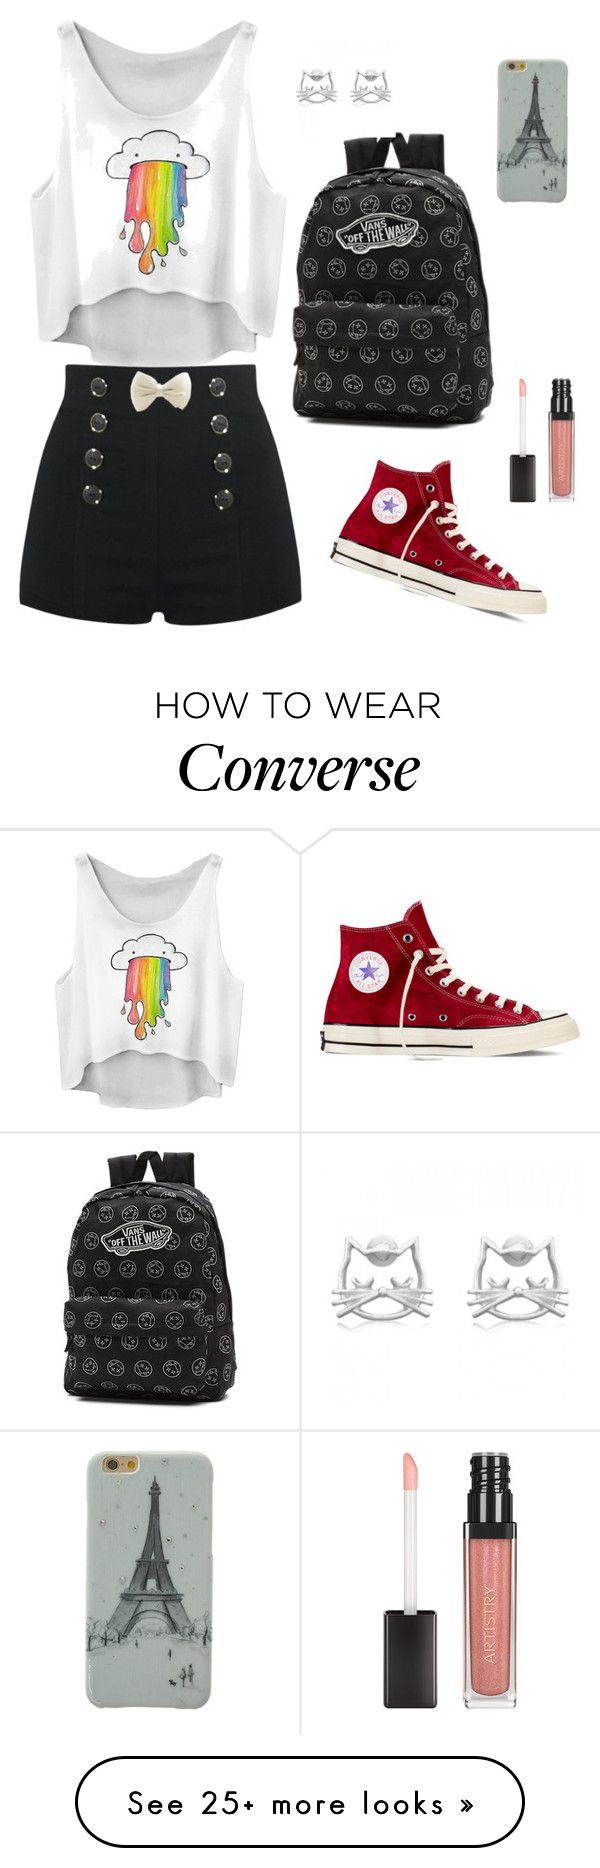 """""""⭐⭐⭐⭐⭐"""" by sabanovicelma on Polyvore featuring Converse and Vans"""